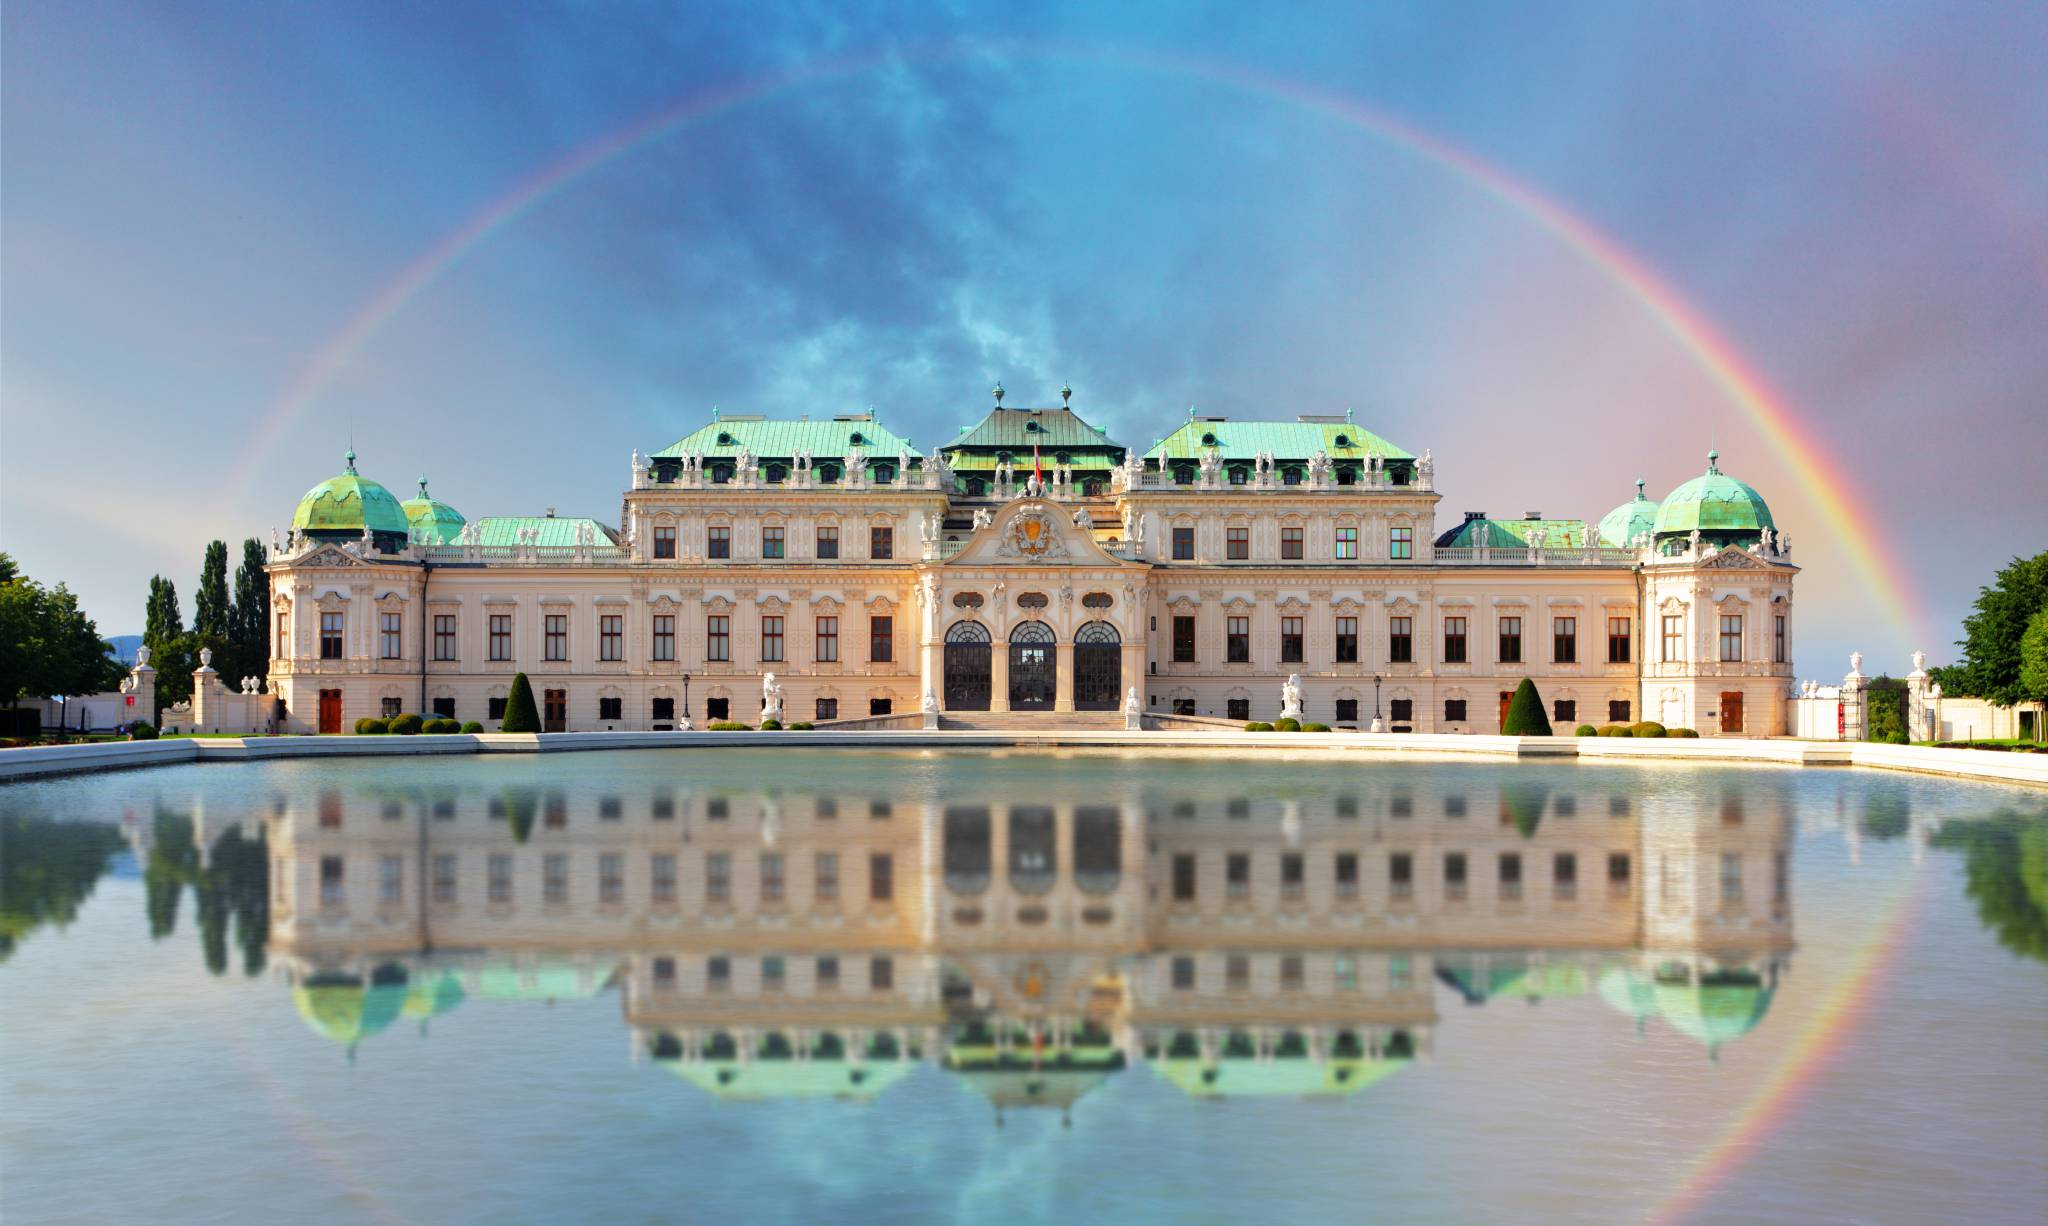 Awesome rainbow in Belvedere palace